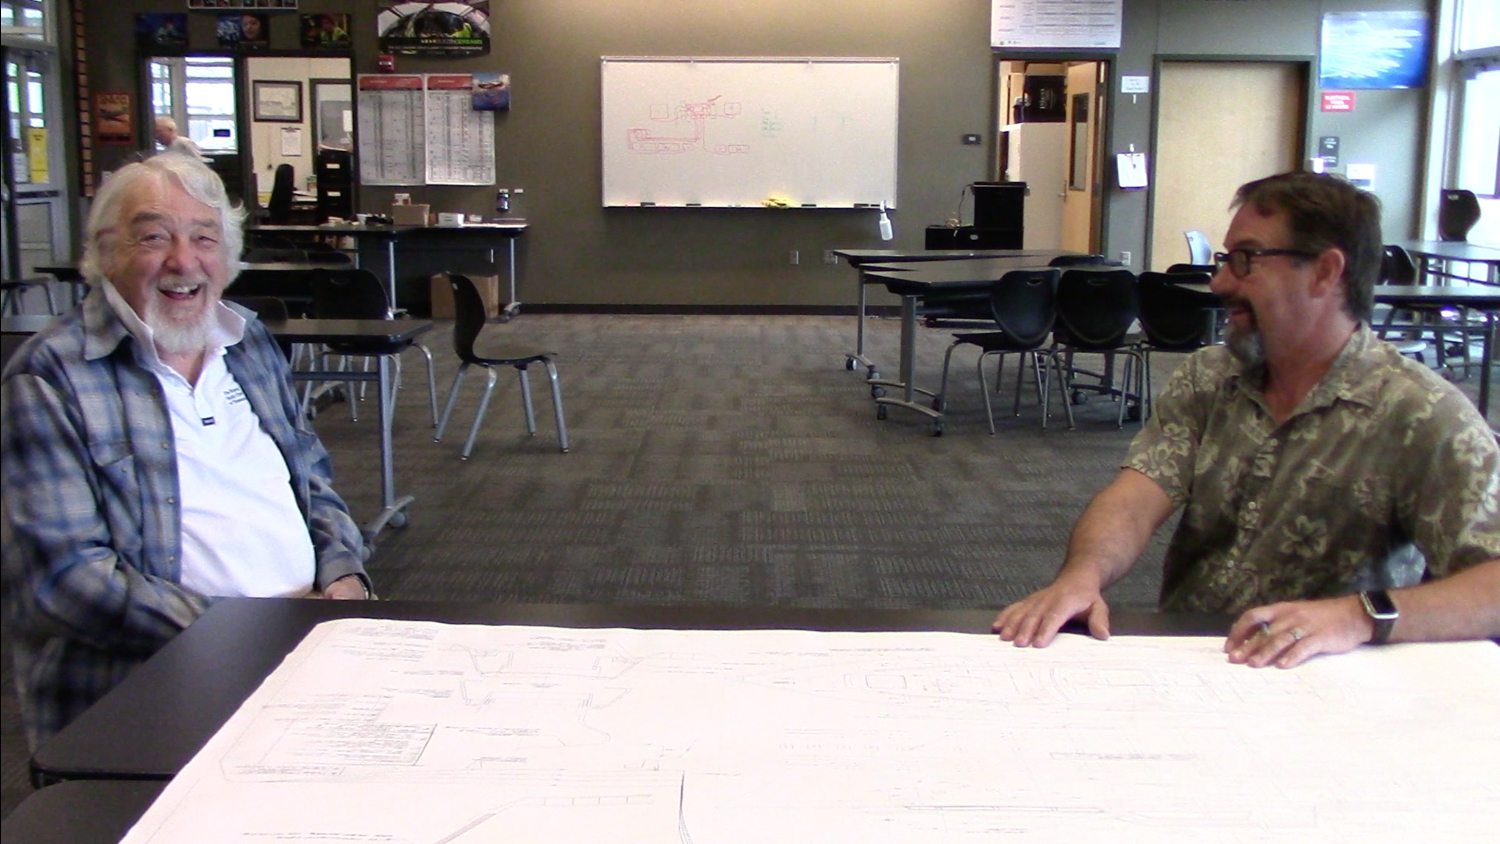 Bob Perry & Mike looking at plans